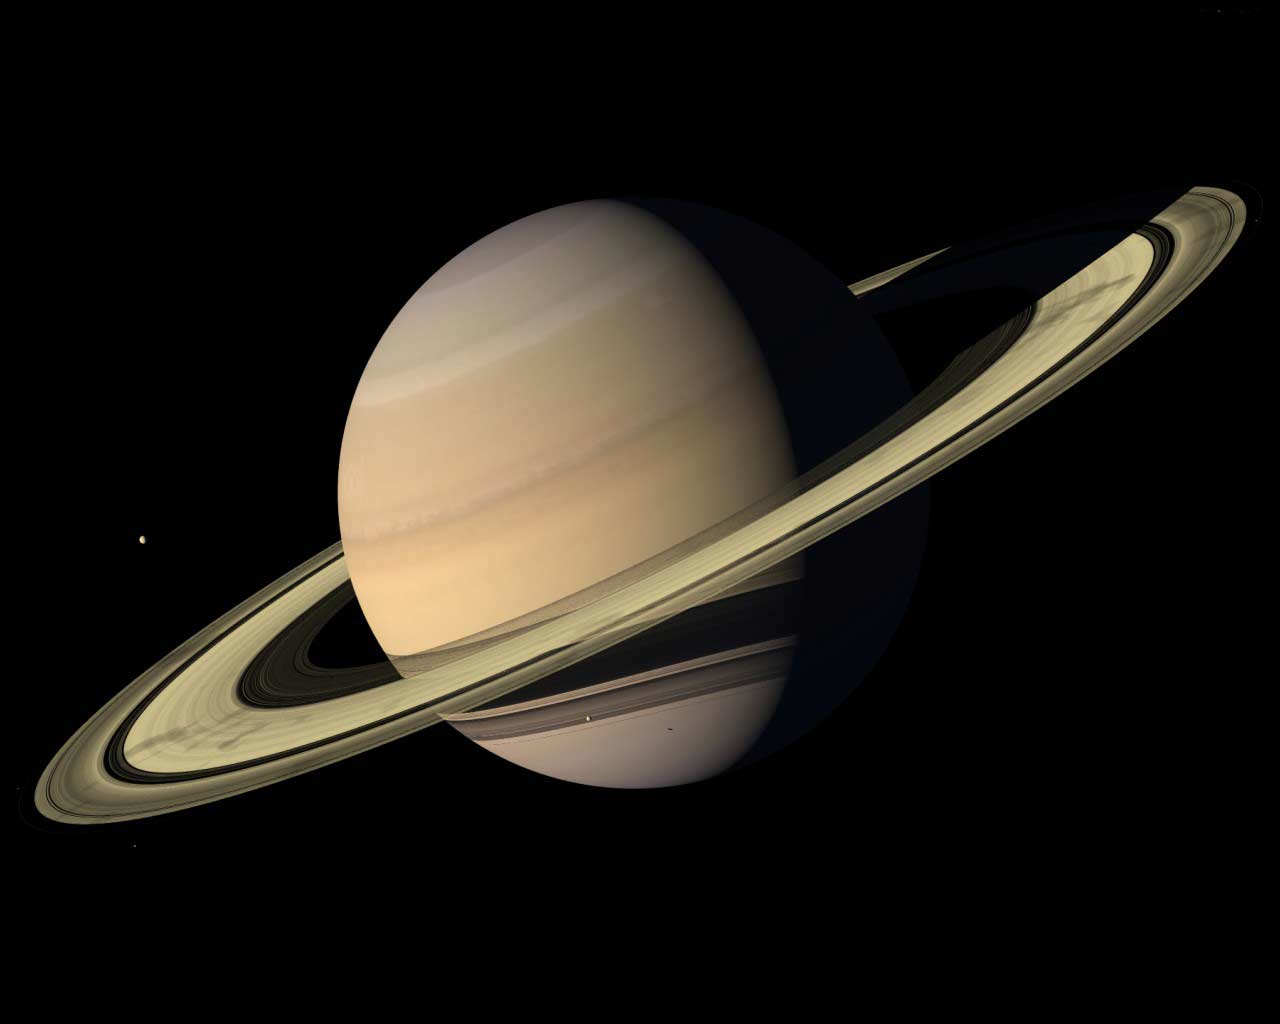 Real Saturn Pictures NASA (page 3) - Pics about space